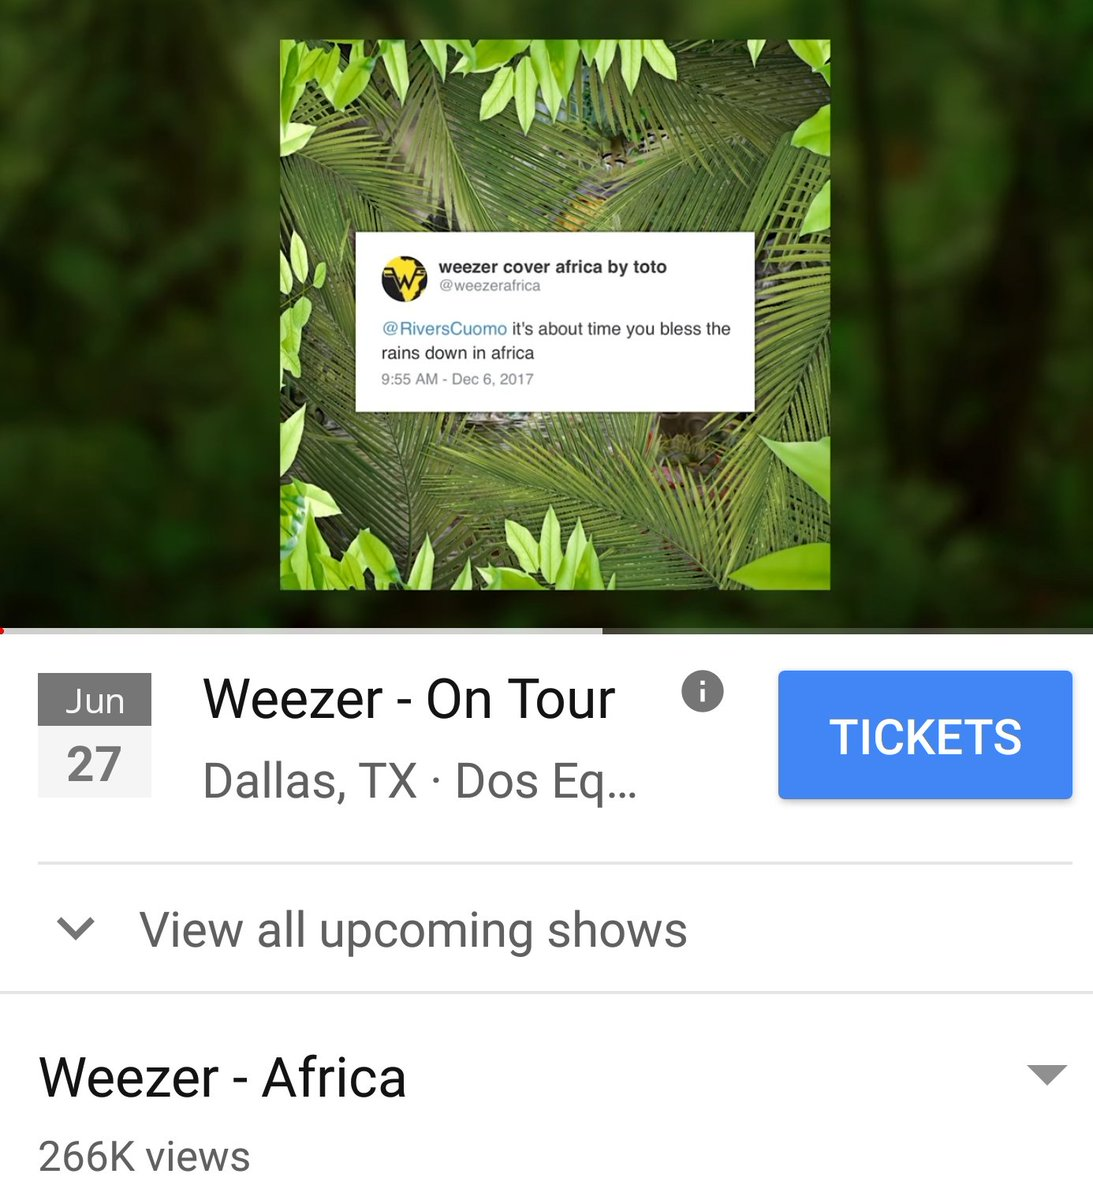 weezer cover africa by toto on Twitter: